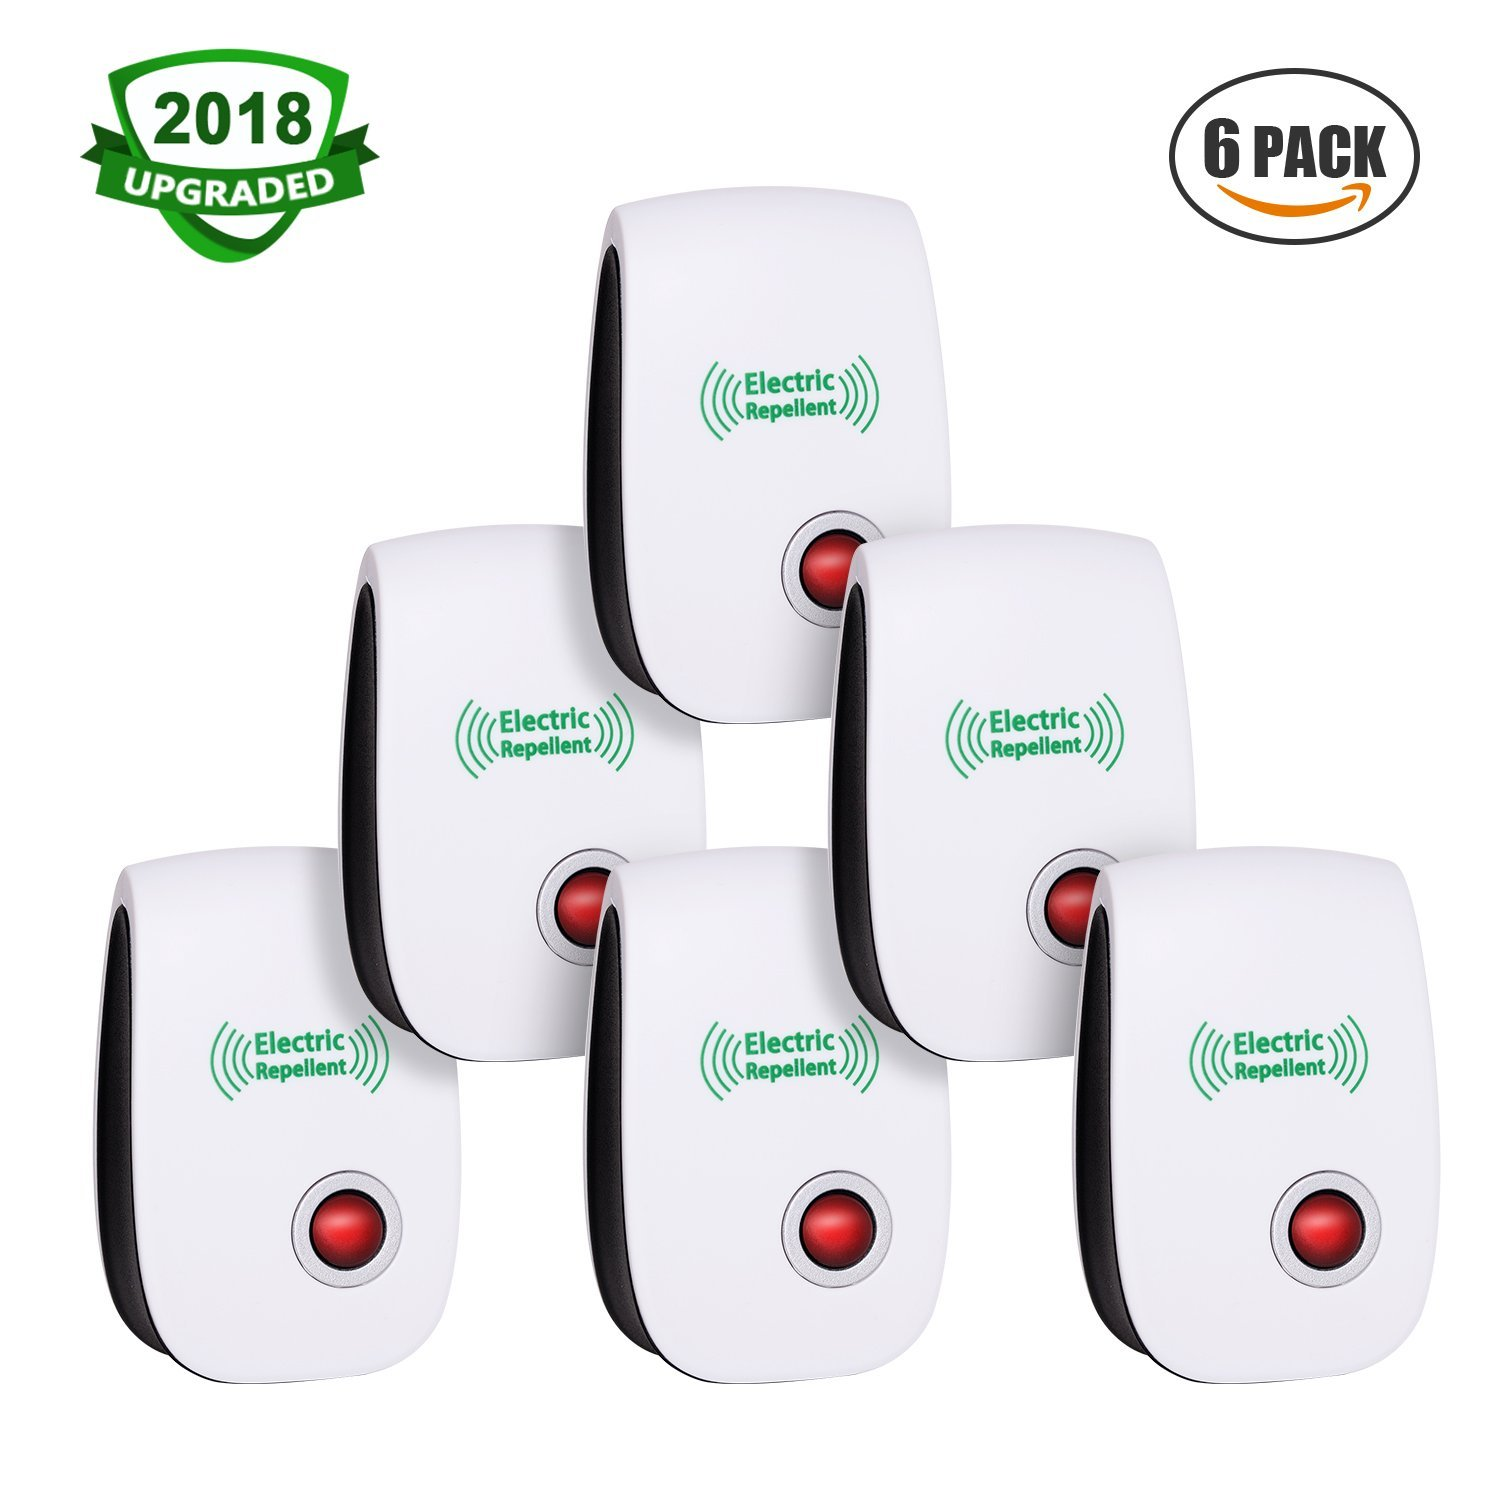 VEPOWER Ultrasonic Electrical Bug Repellent Pest Control, 6 Packs, Design 1